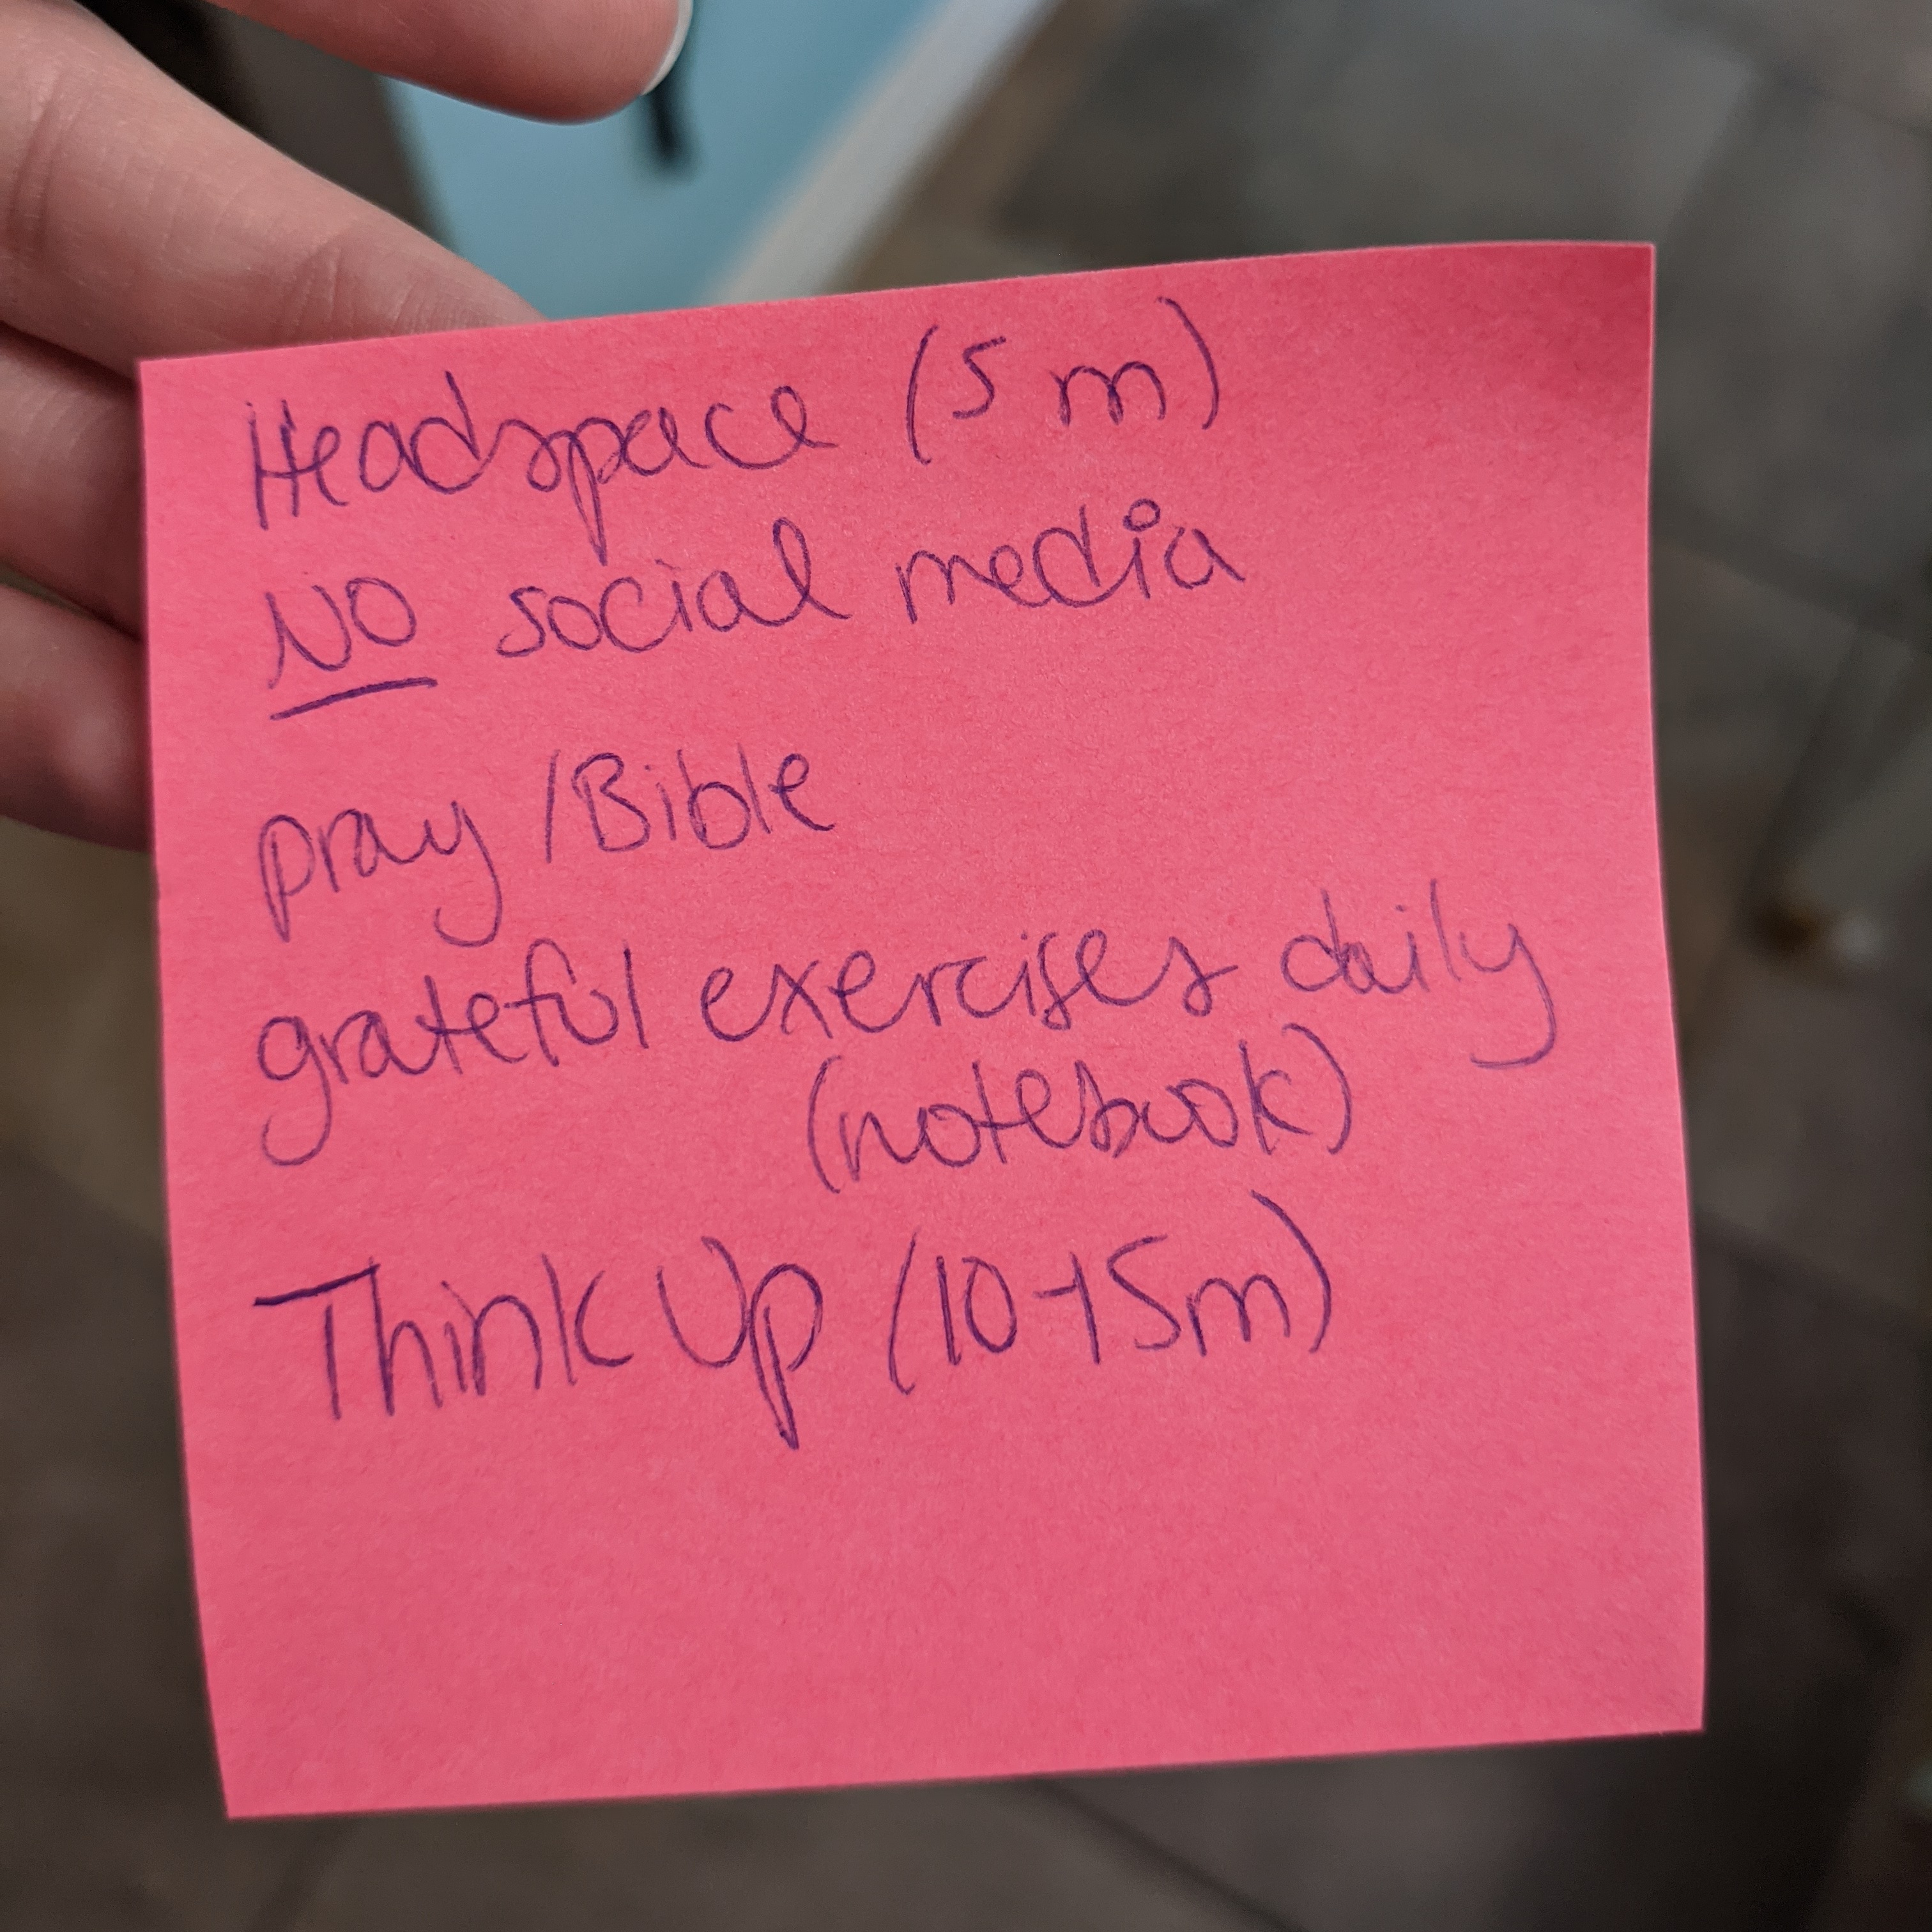 post-it with anxiety remedies